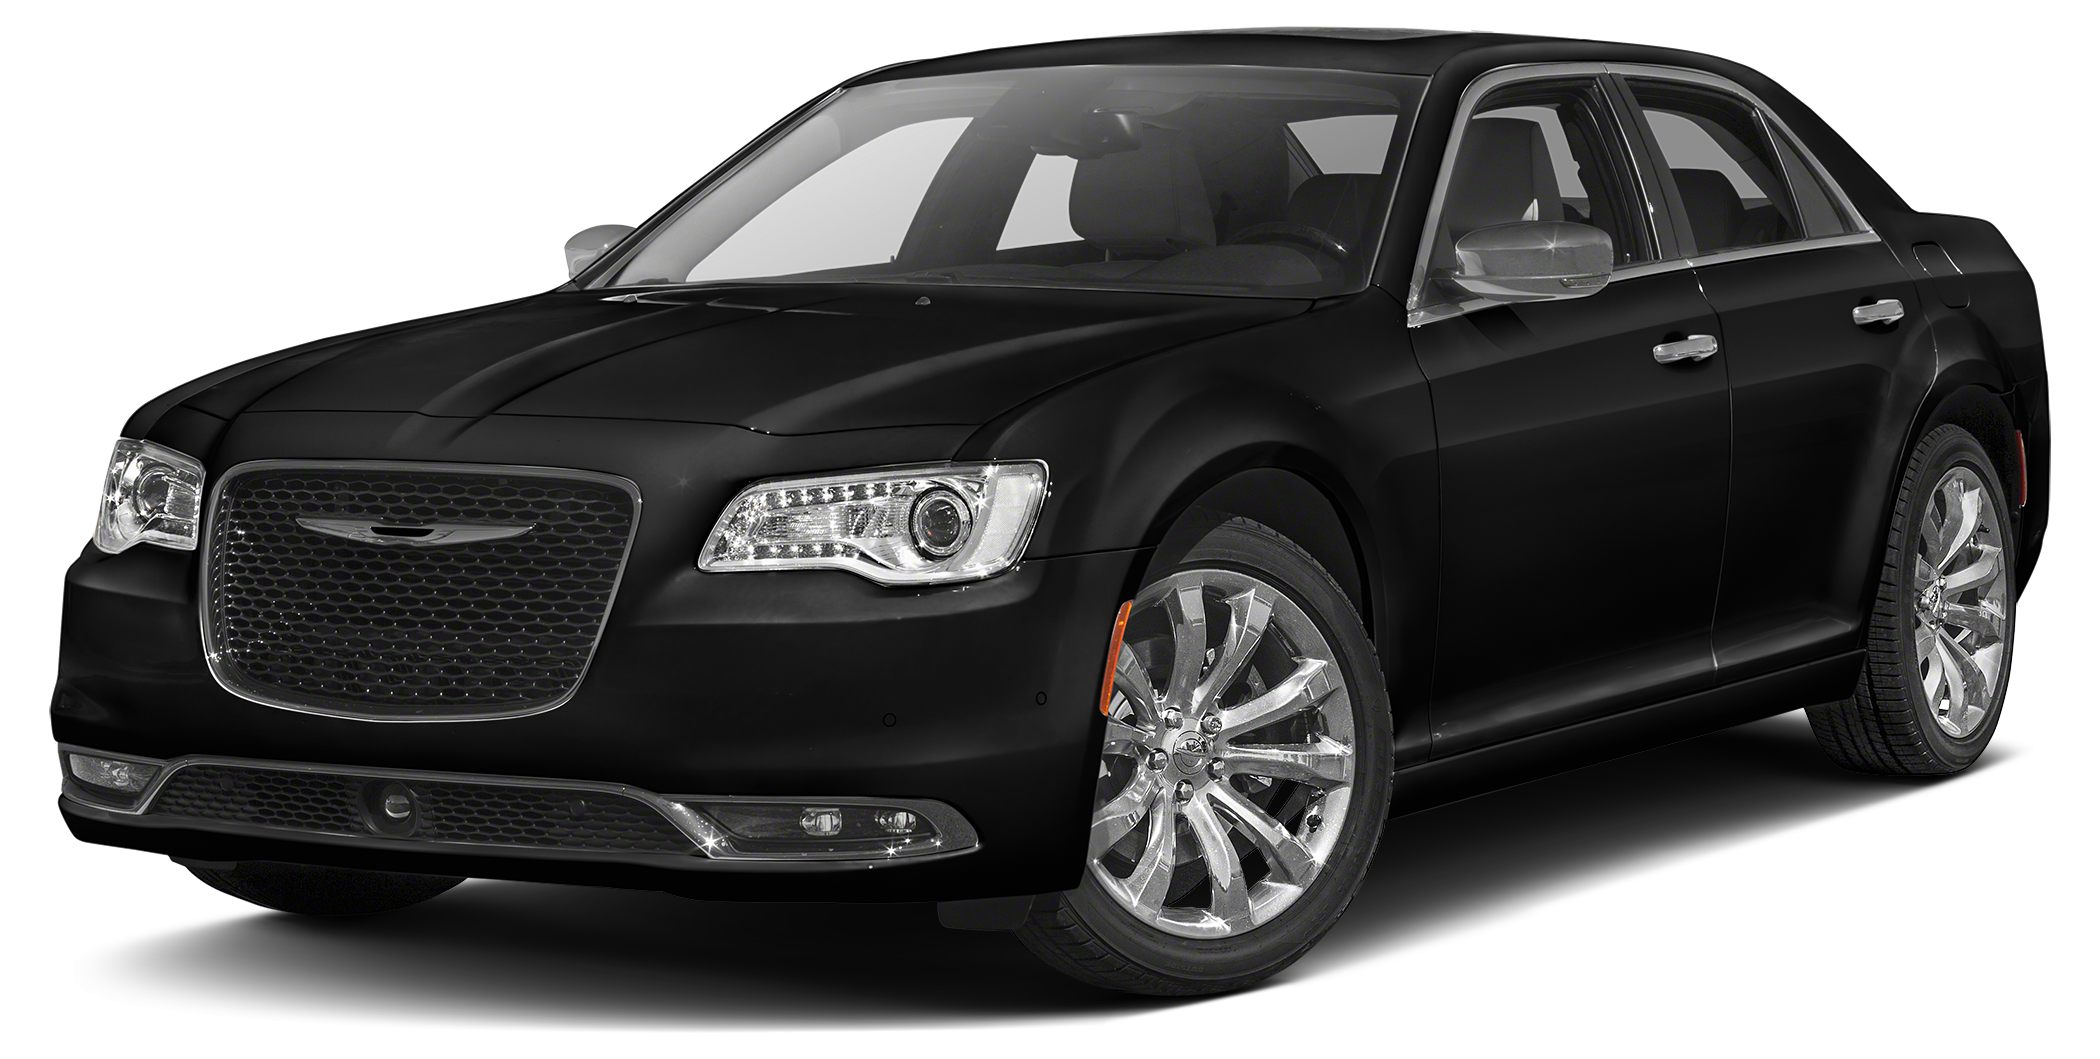 2016 Chrysler 300C Base Quick Order Package 22T 19 x 75 Polished Aluminum Wheels ABS brakes Co